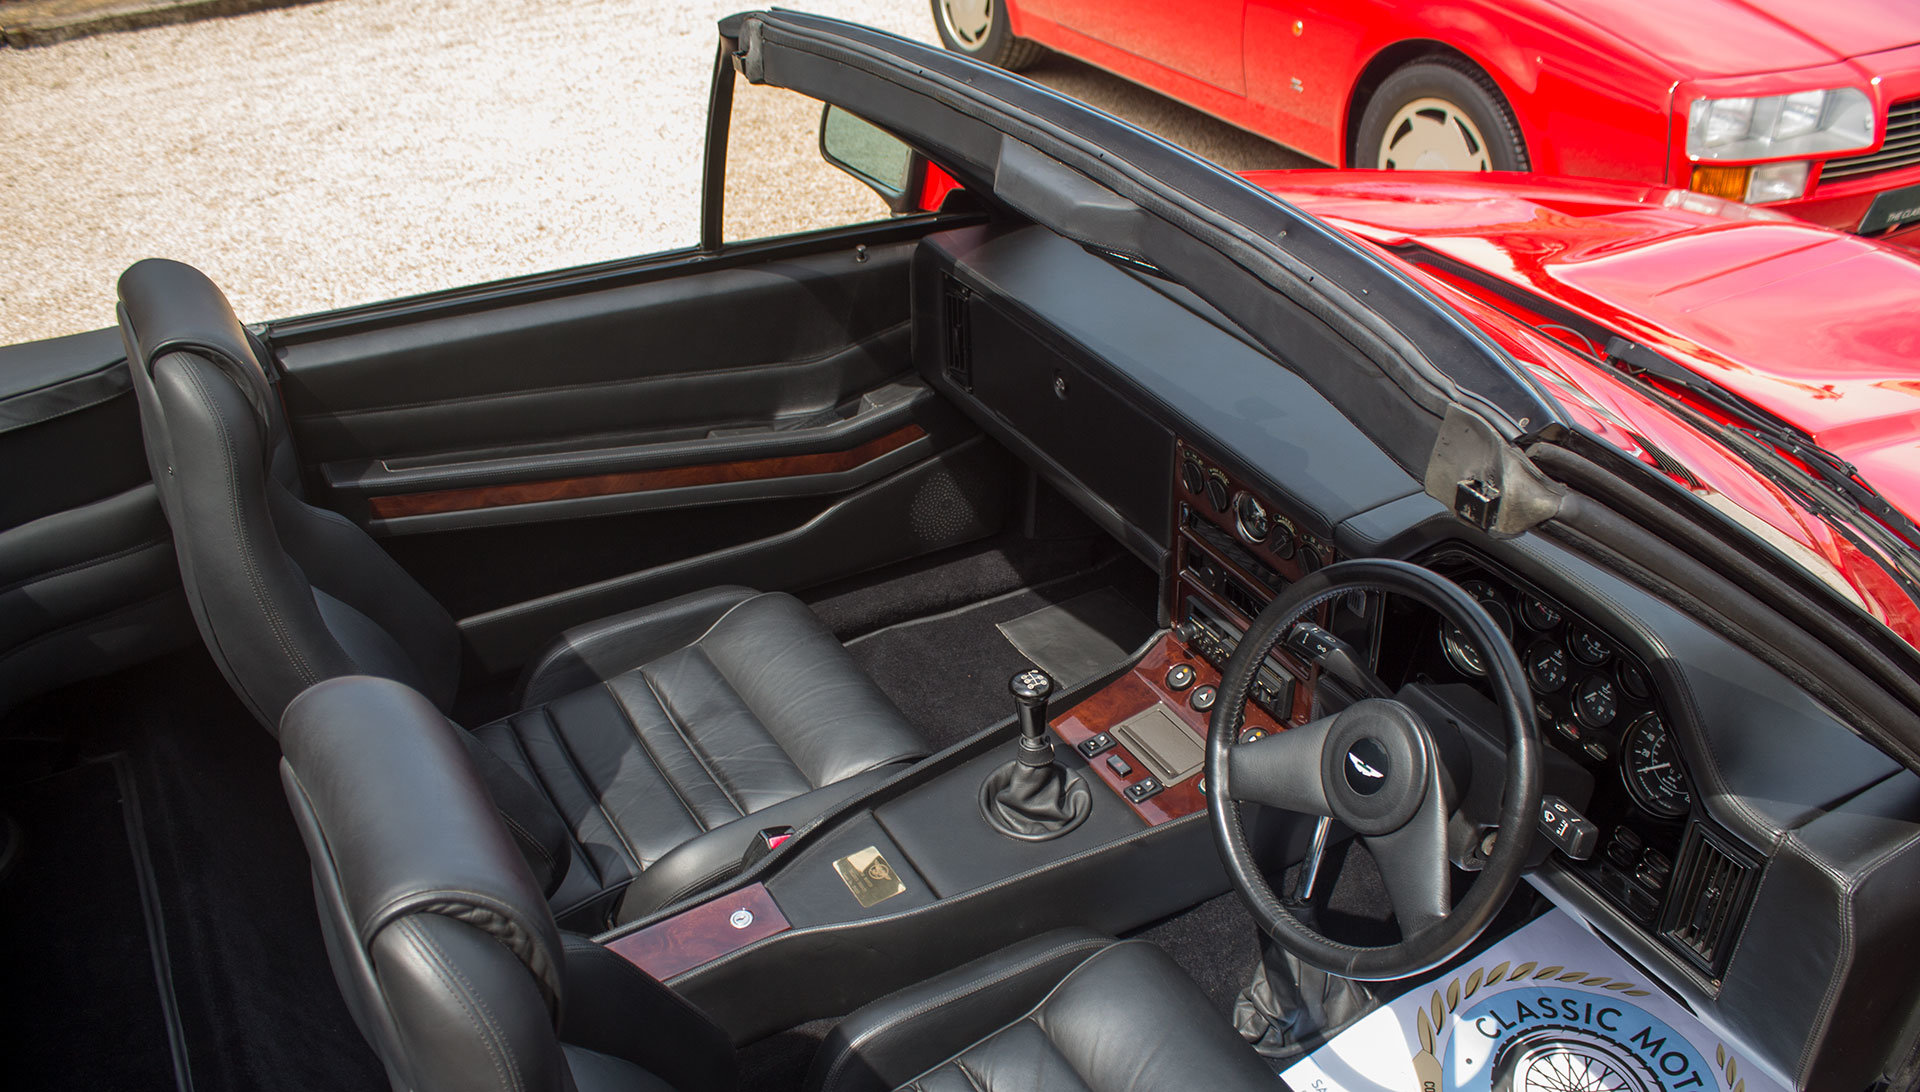 1989 Aston Martin V8 Vantage Volante Zagato - Unregistered For Sale (picture 14 of 24)